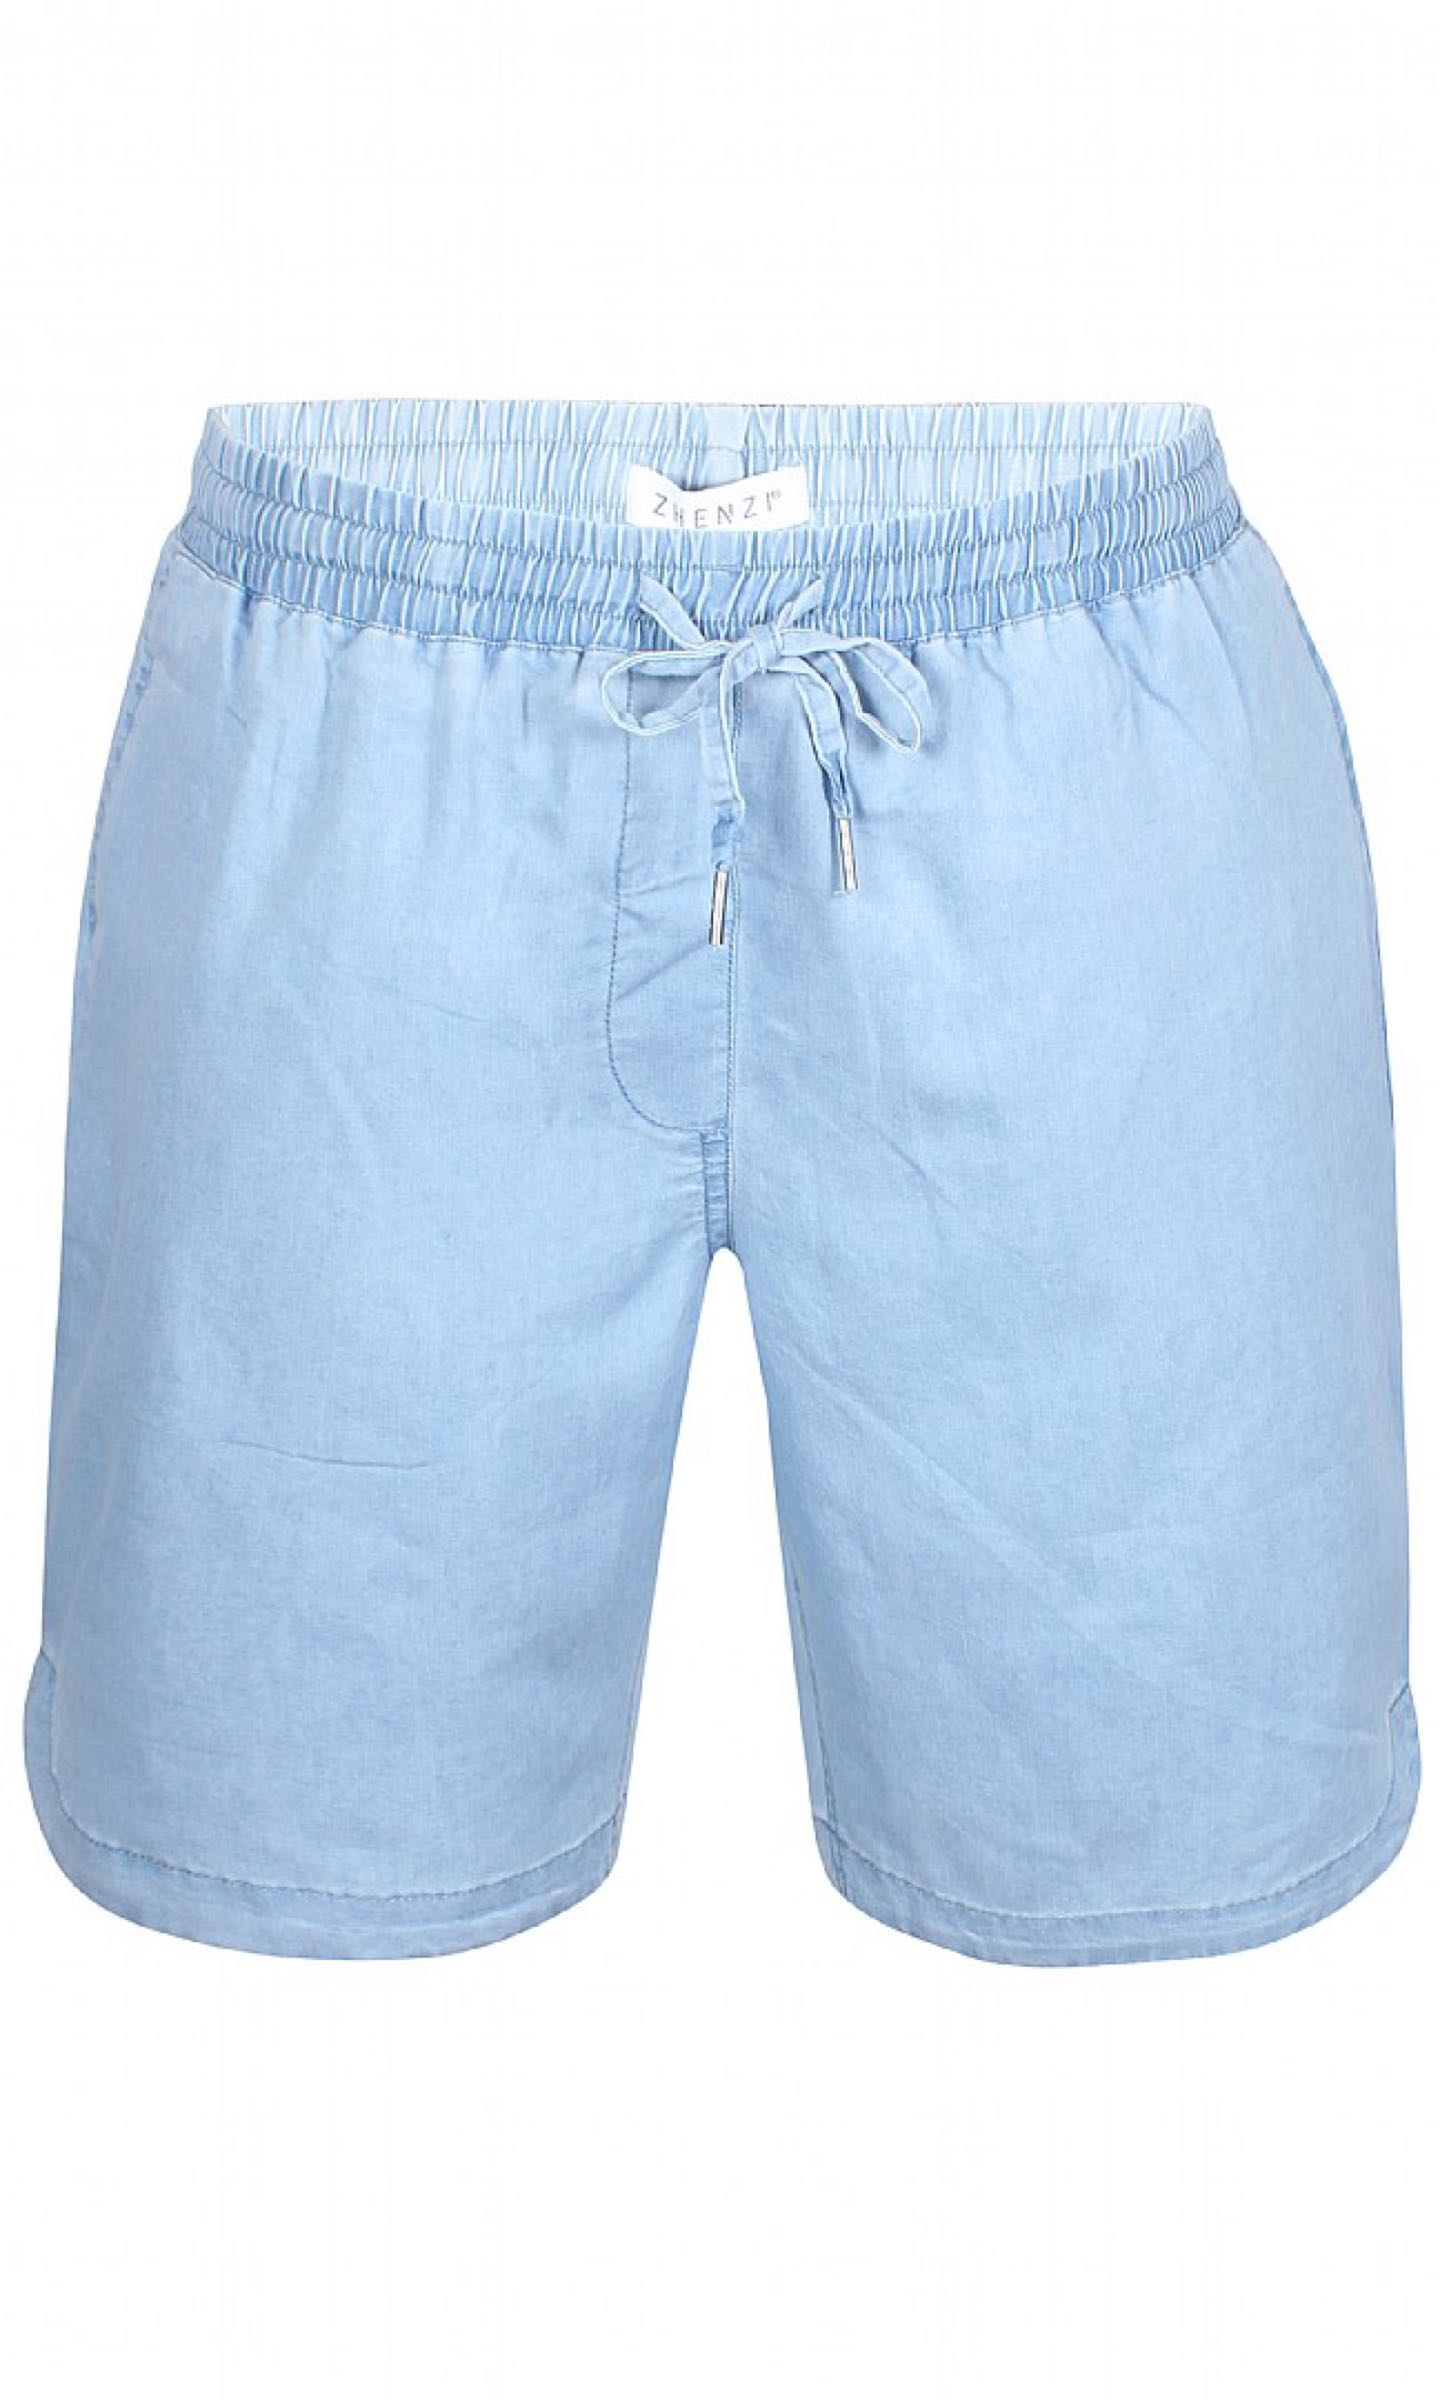 Shorts, ljus denim